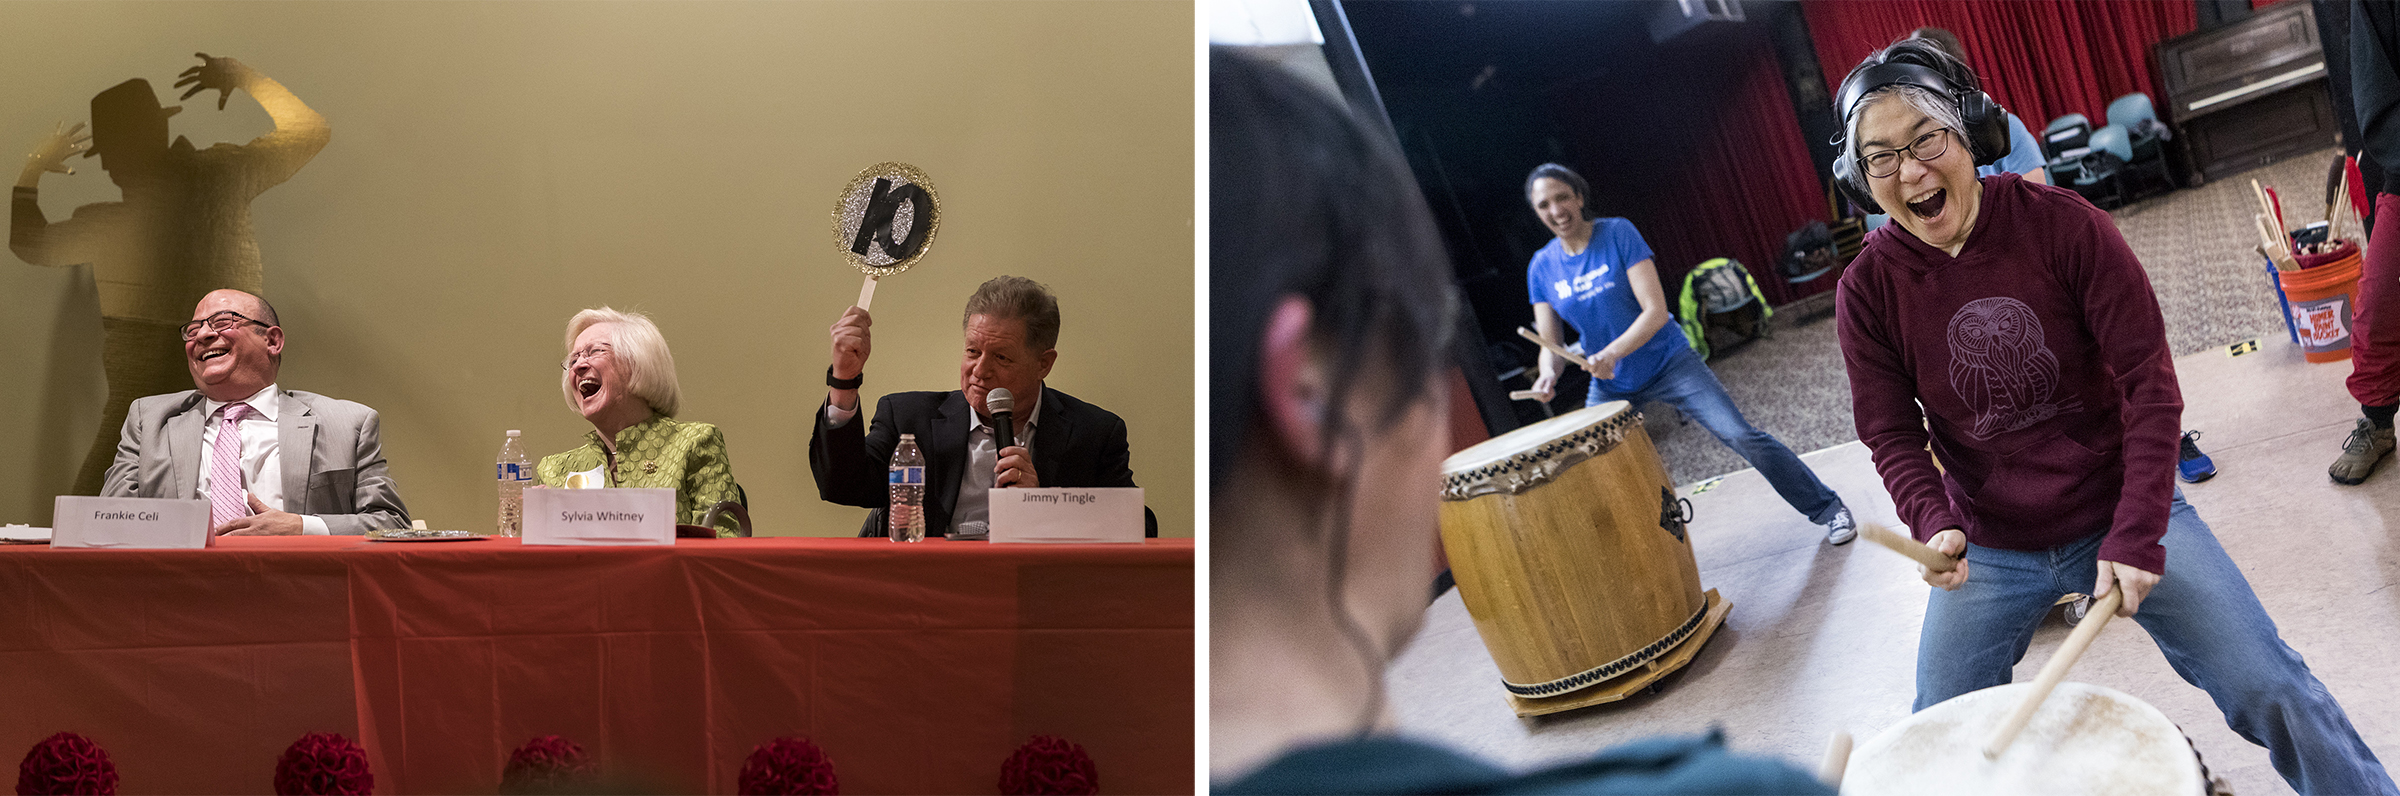 (Left) Judges Frankie Celi and Sylvia Whitney laugh as comedian Jimmy Tingle reveals his scorecard during Dancing with the Belmont Stars at the Beech Street Center in Belmont on April 5, 2019. (Right) Juni Kobayashi, director of Odaiko New England, drums with a student during the Taiko drumming class taught at the Regent Underground in Arlington on April 1, 2019.